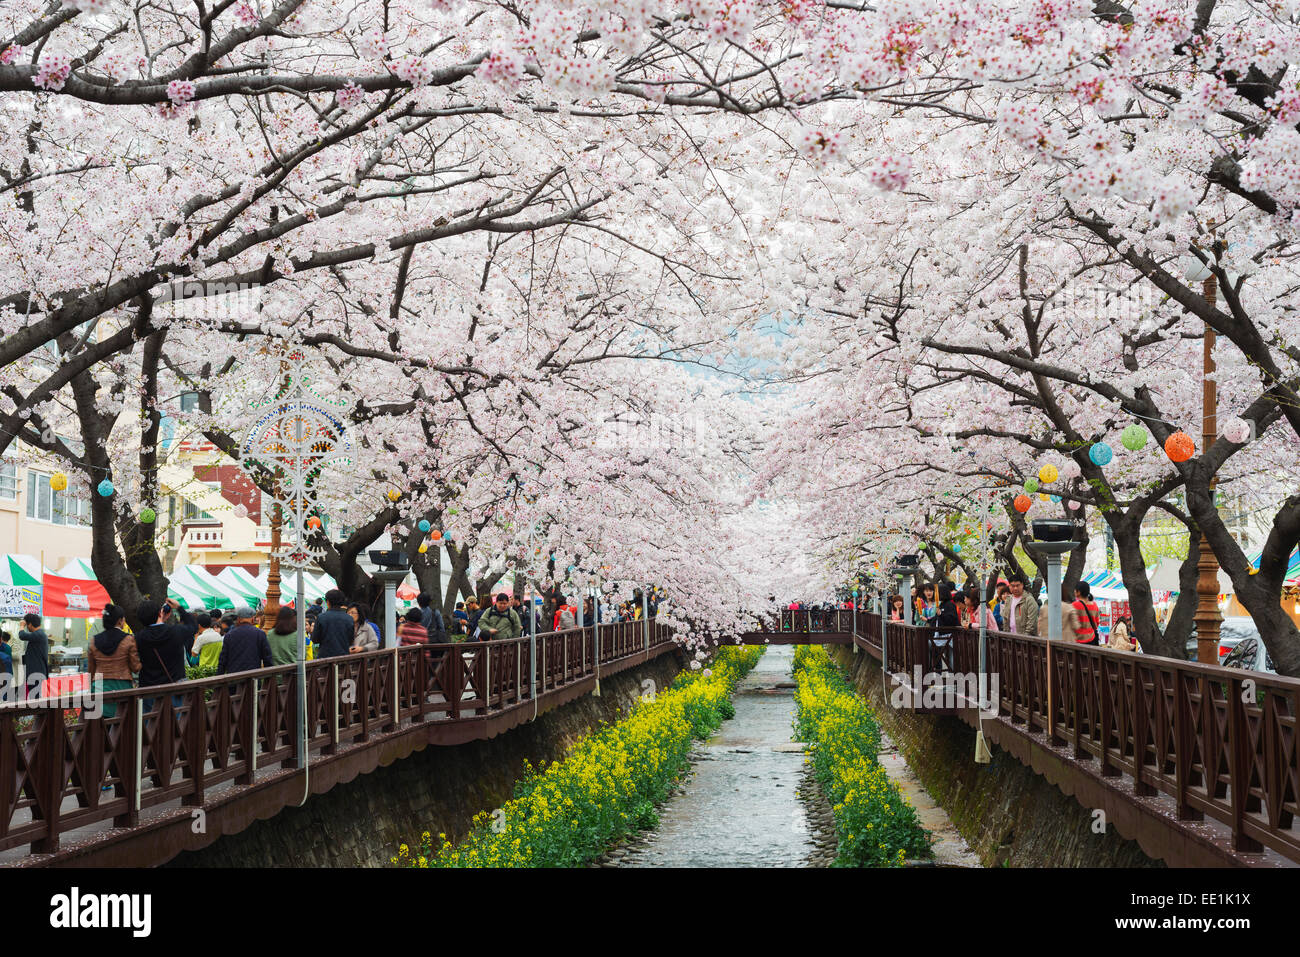 Spring cherry blossom festival, Jinhei, South Korea, Asia - Stock Image